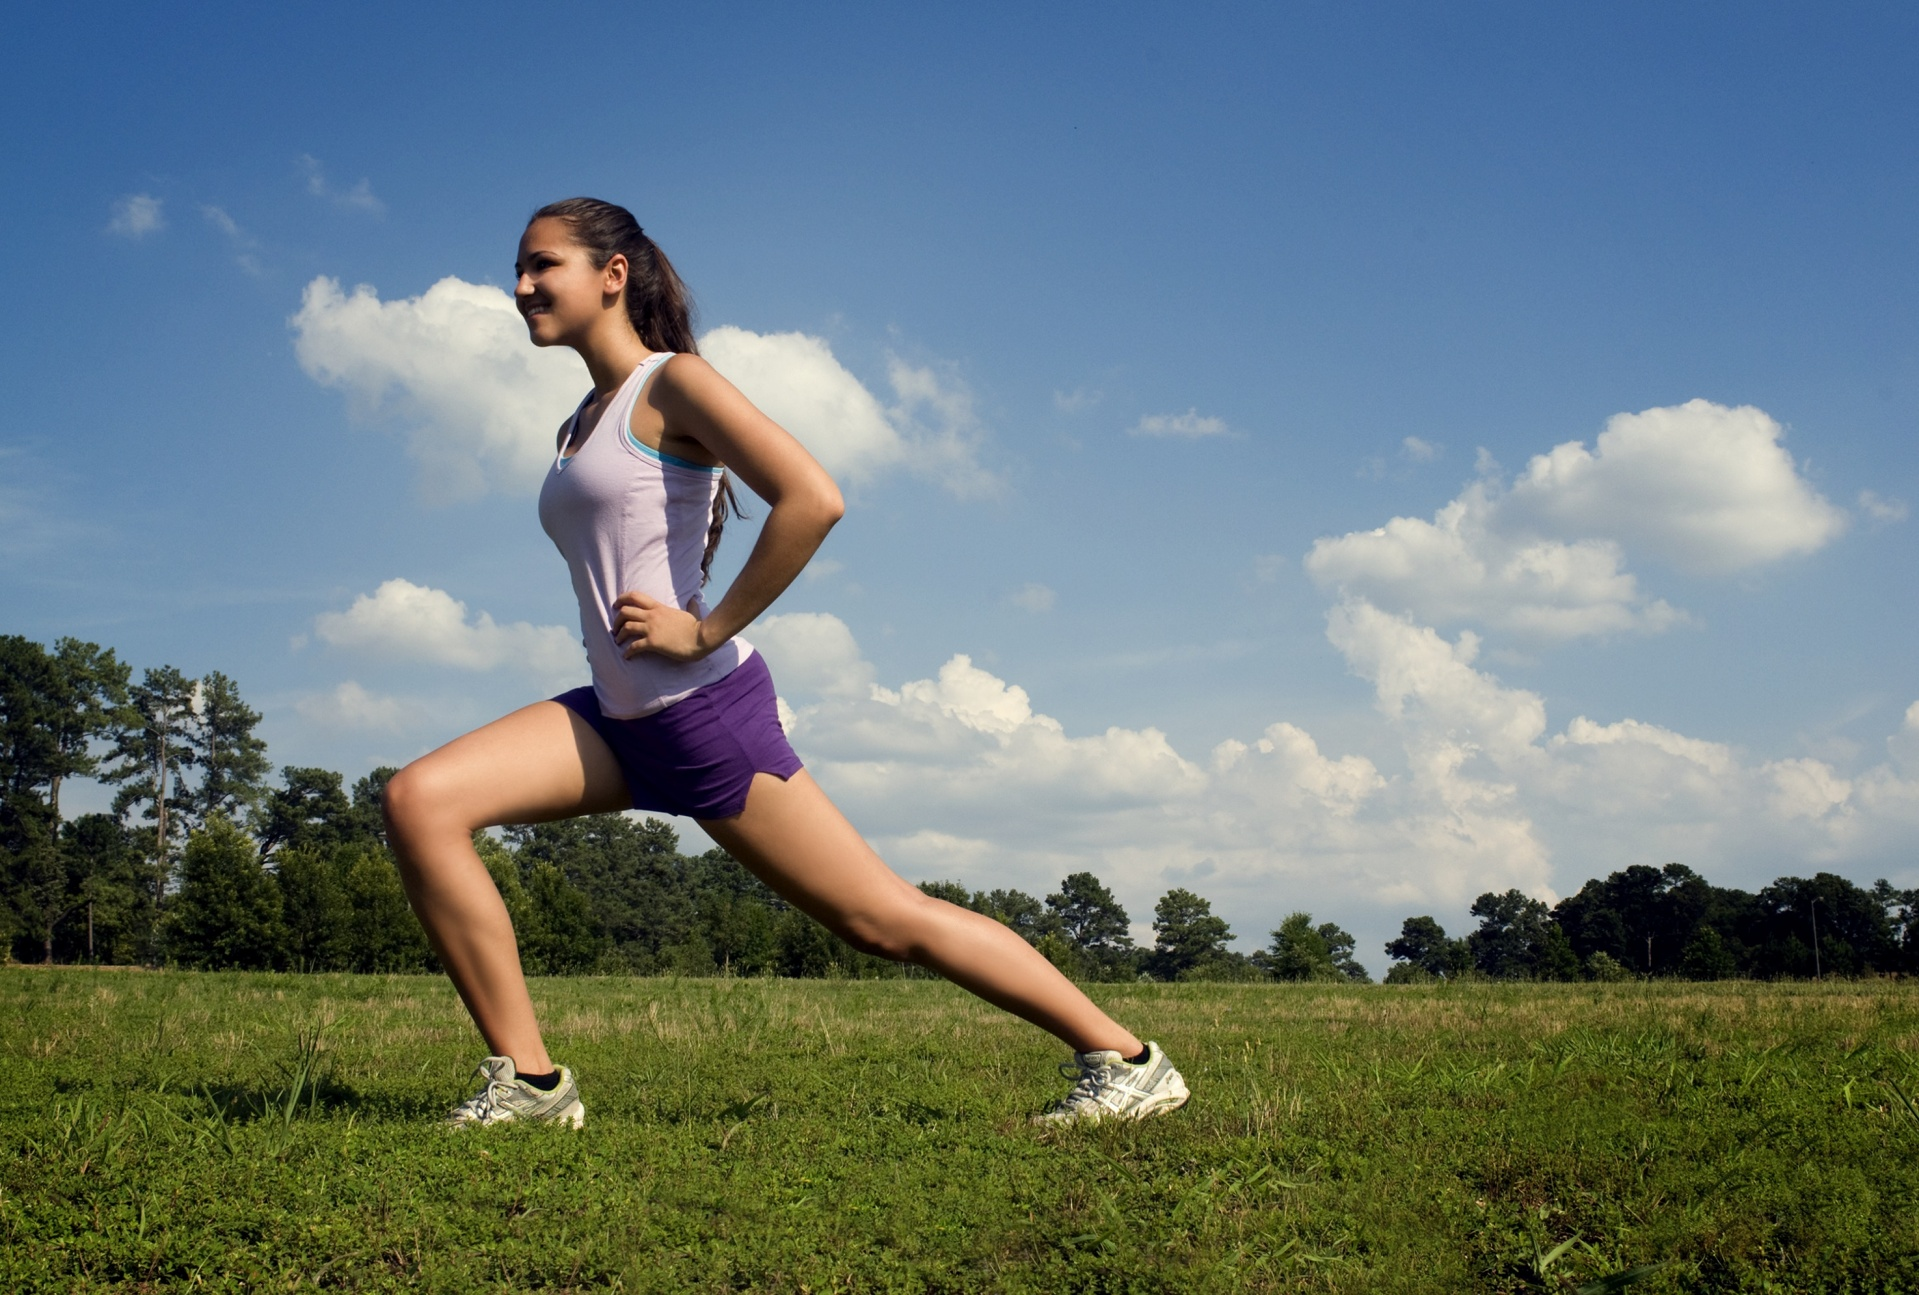 Sporty Young Woman Jogging